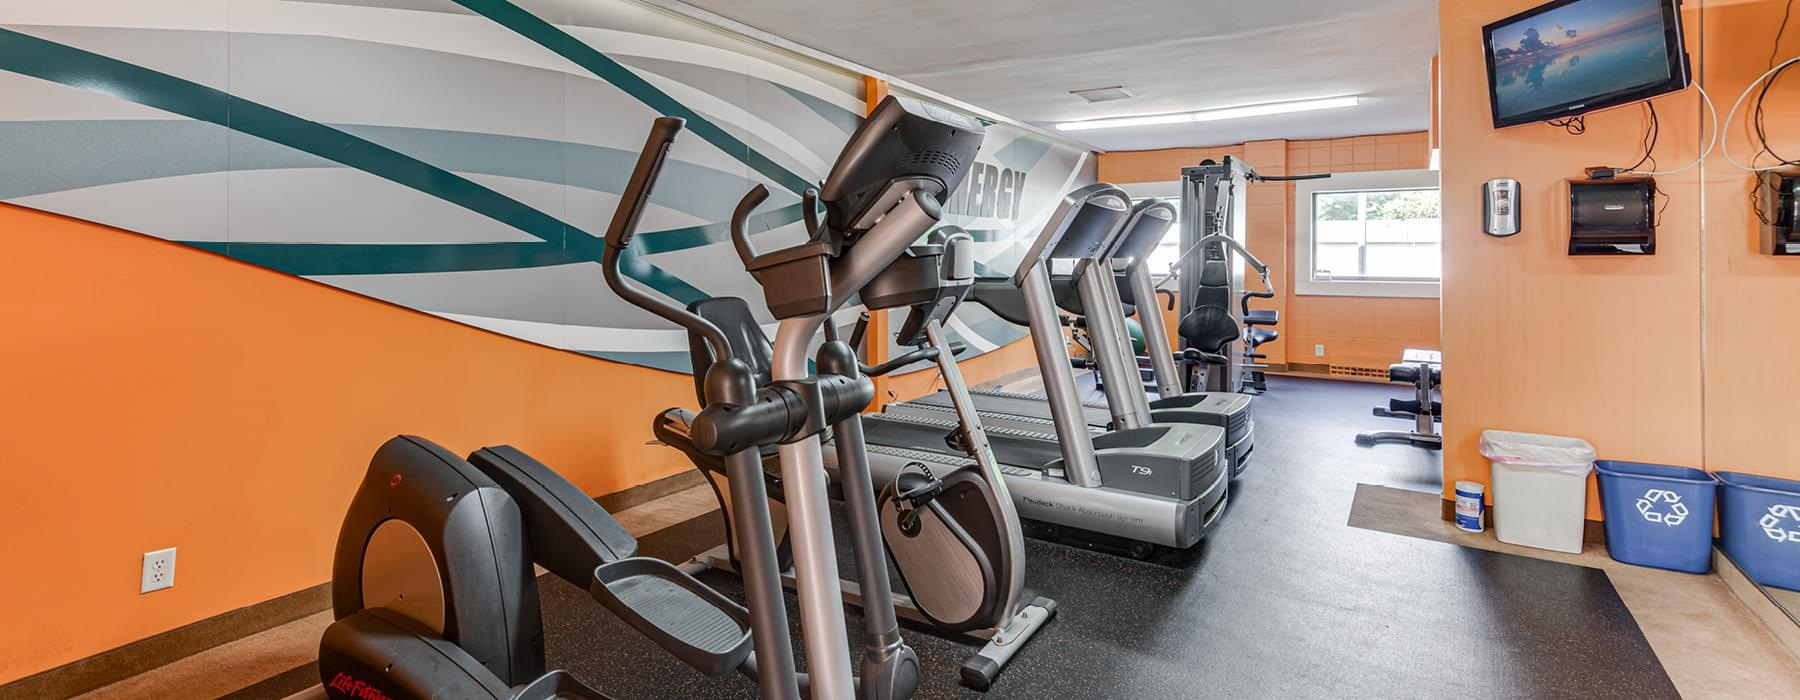 fitness center, well lit by windows and fluorescent lights